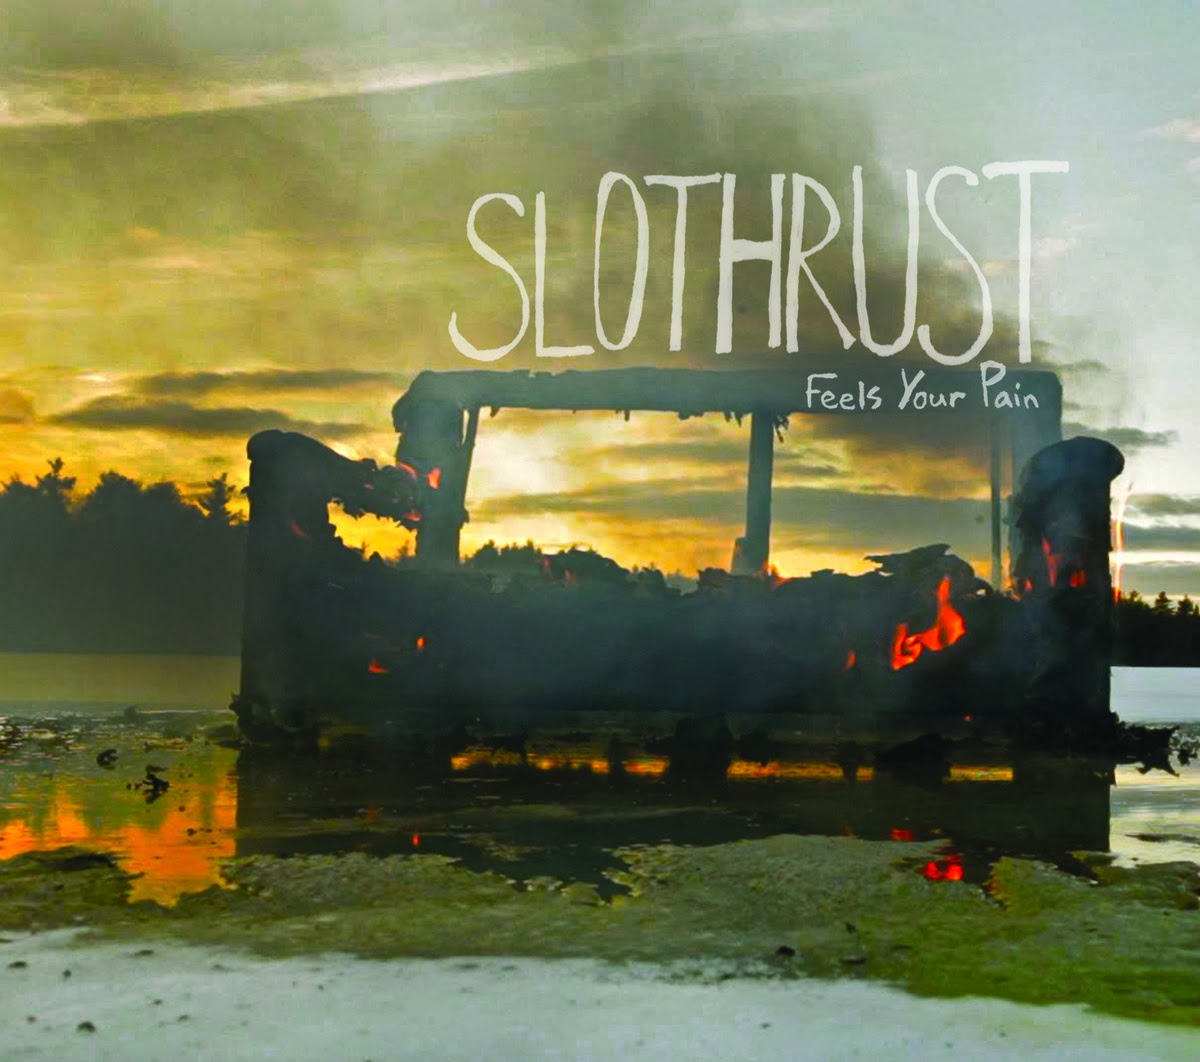 http://www.d4am.net/2014/01/slothrust-feels-your-pain.html